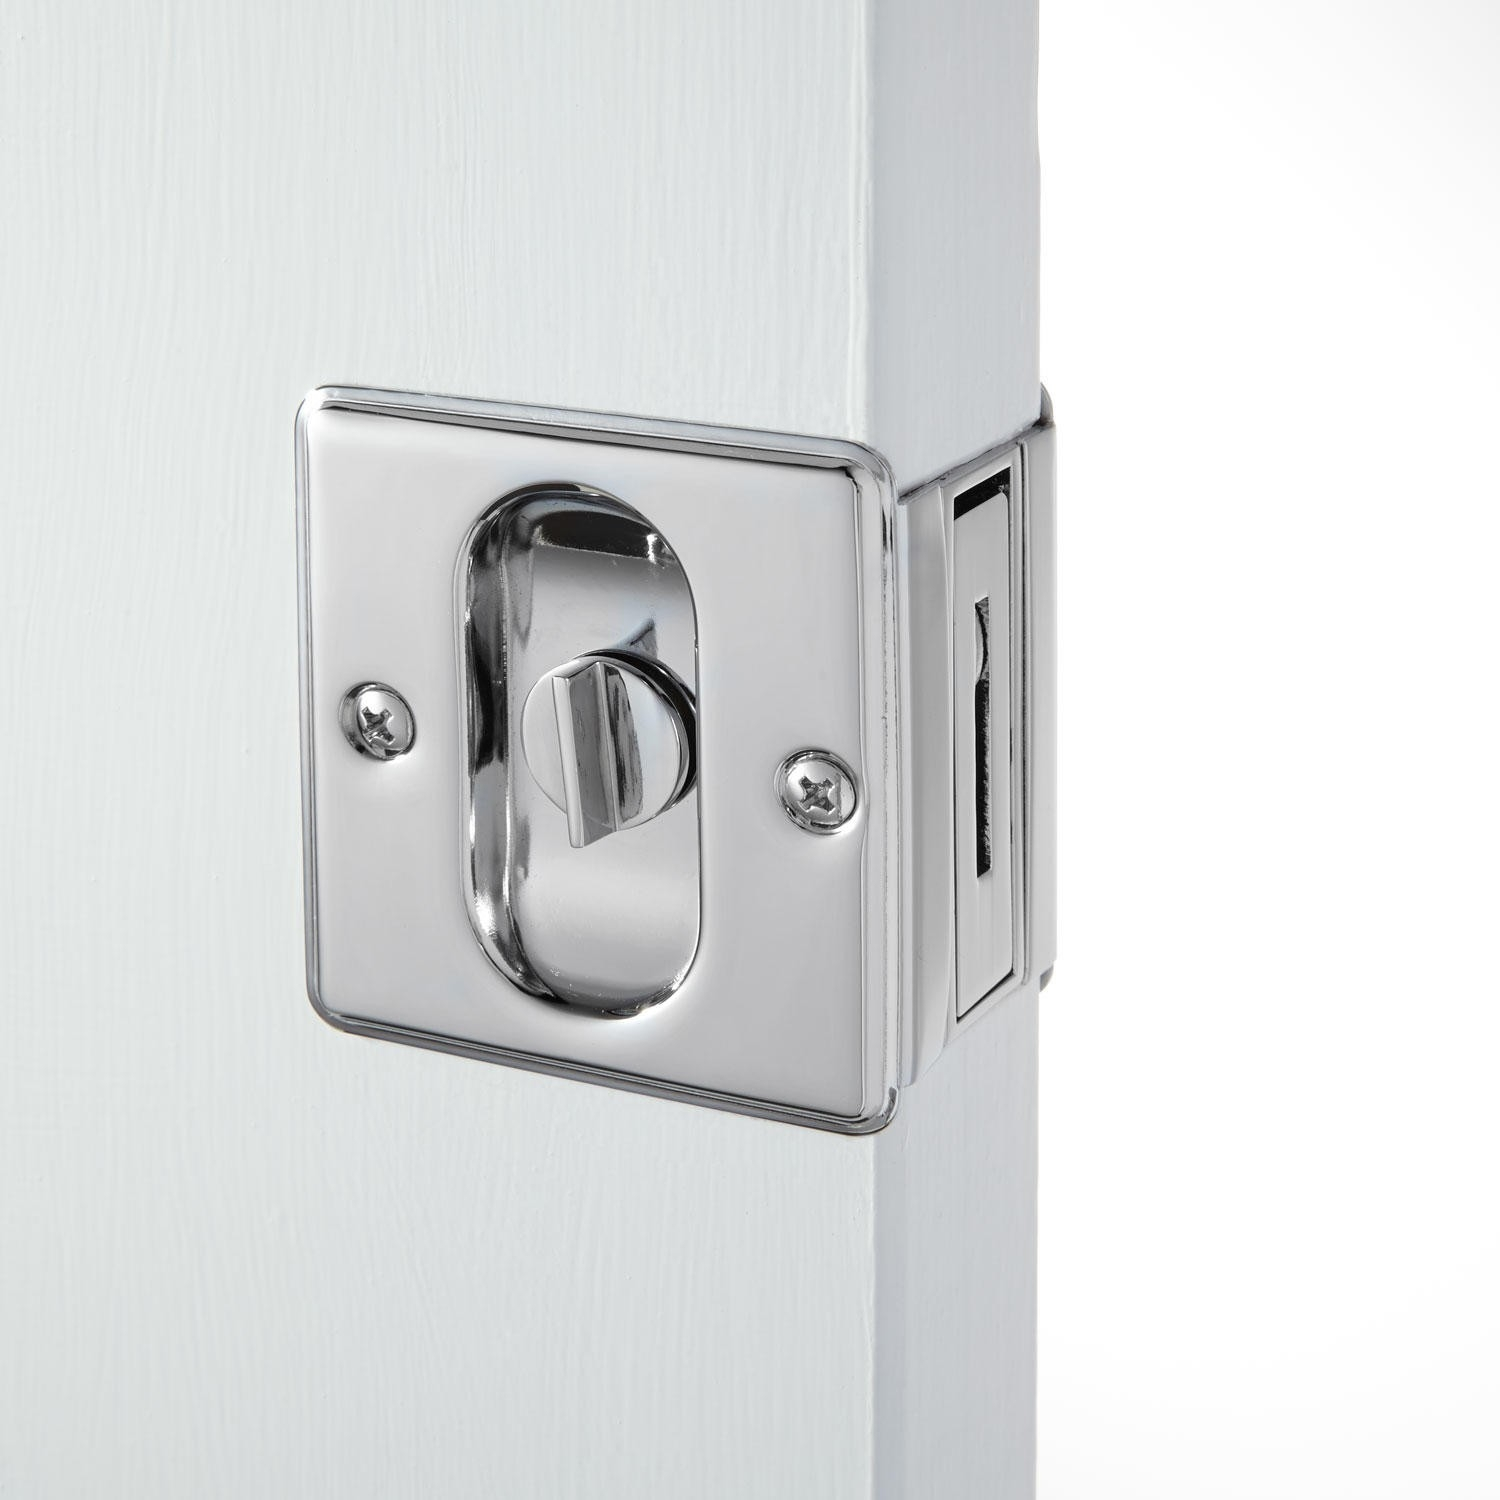 Bathroom Pocket Door Hardware Pulls Locks